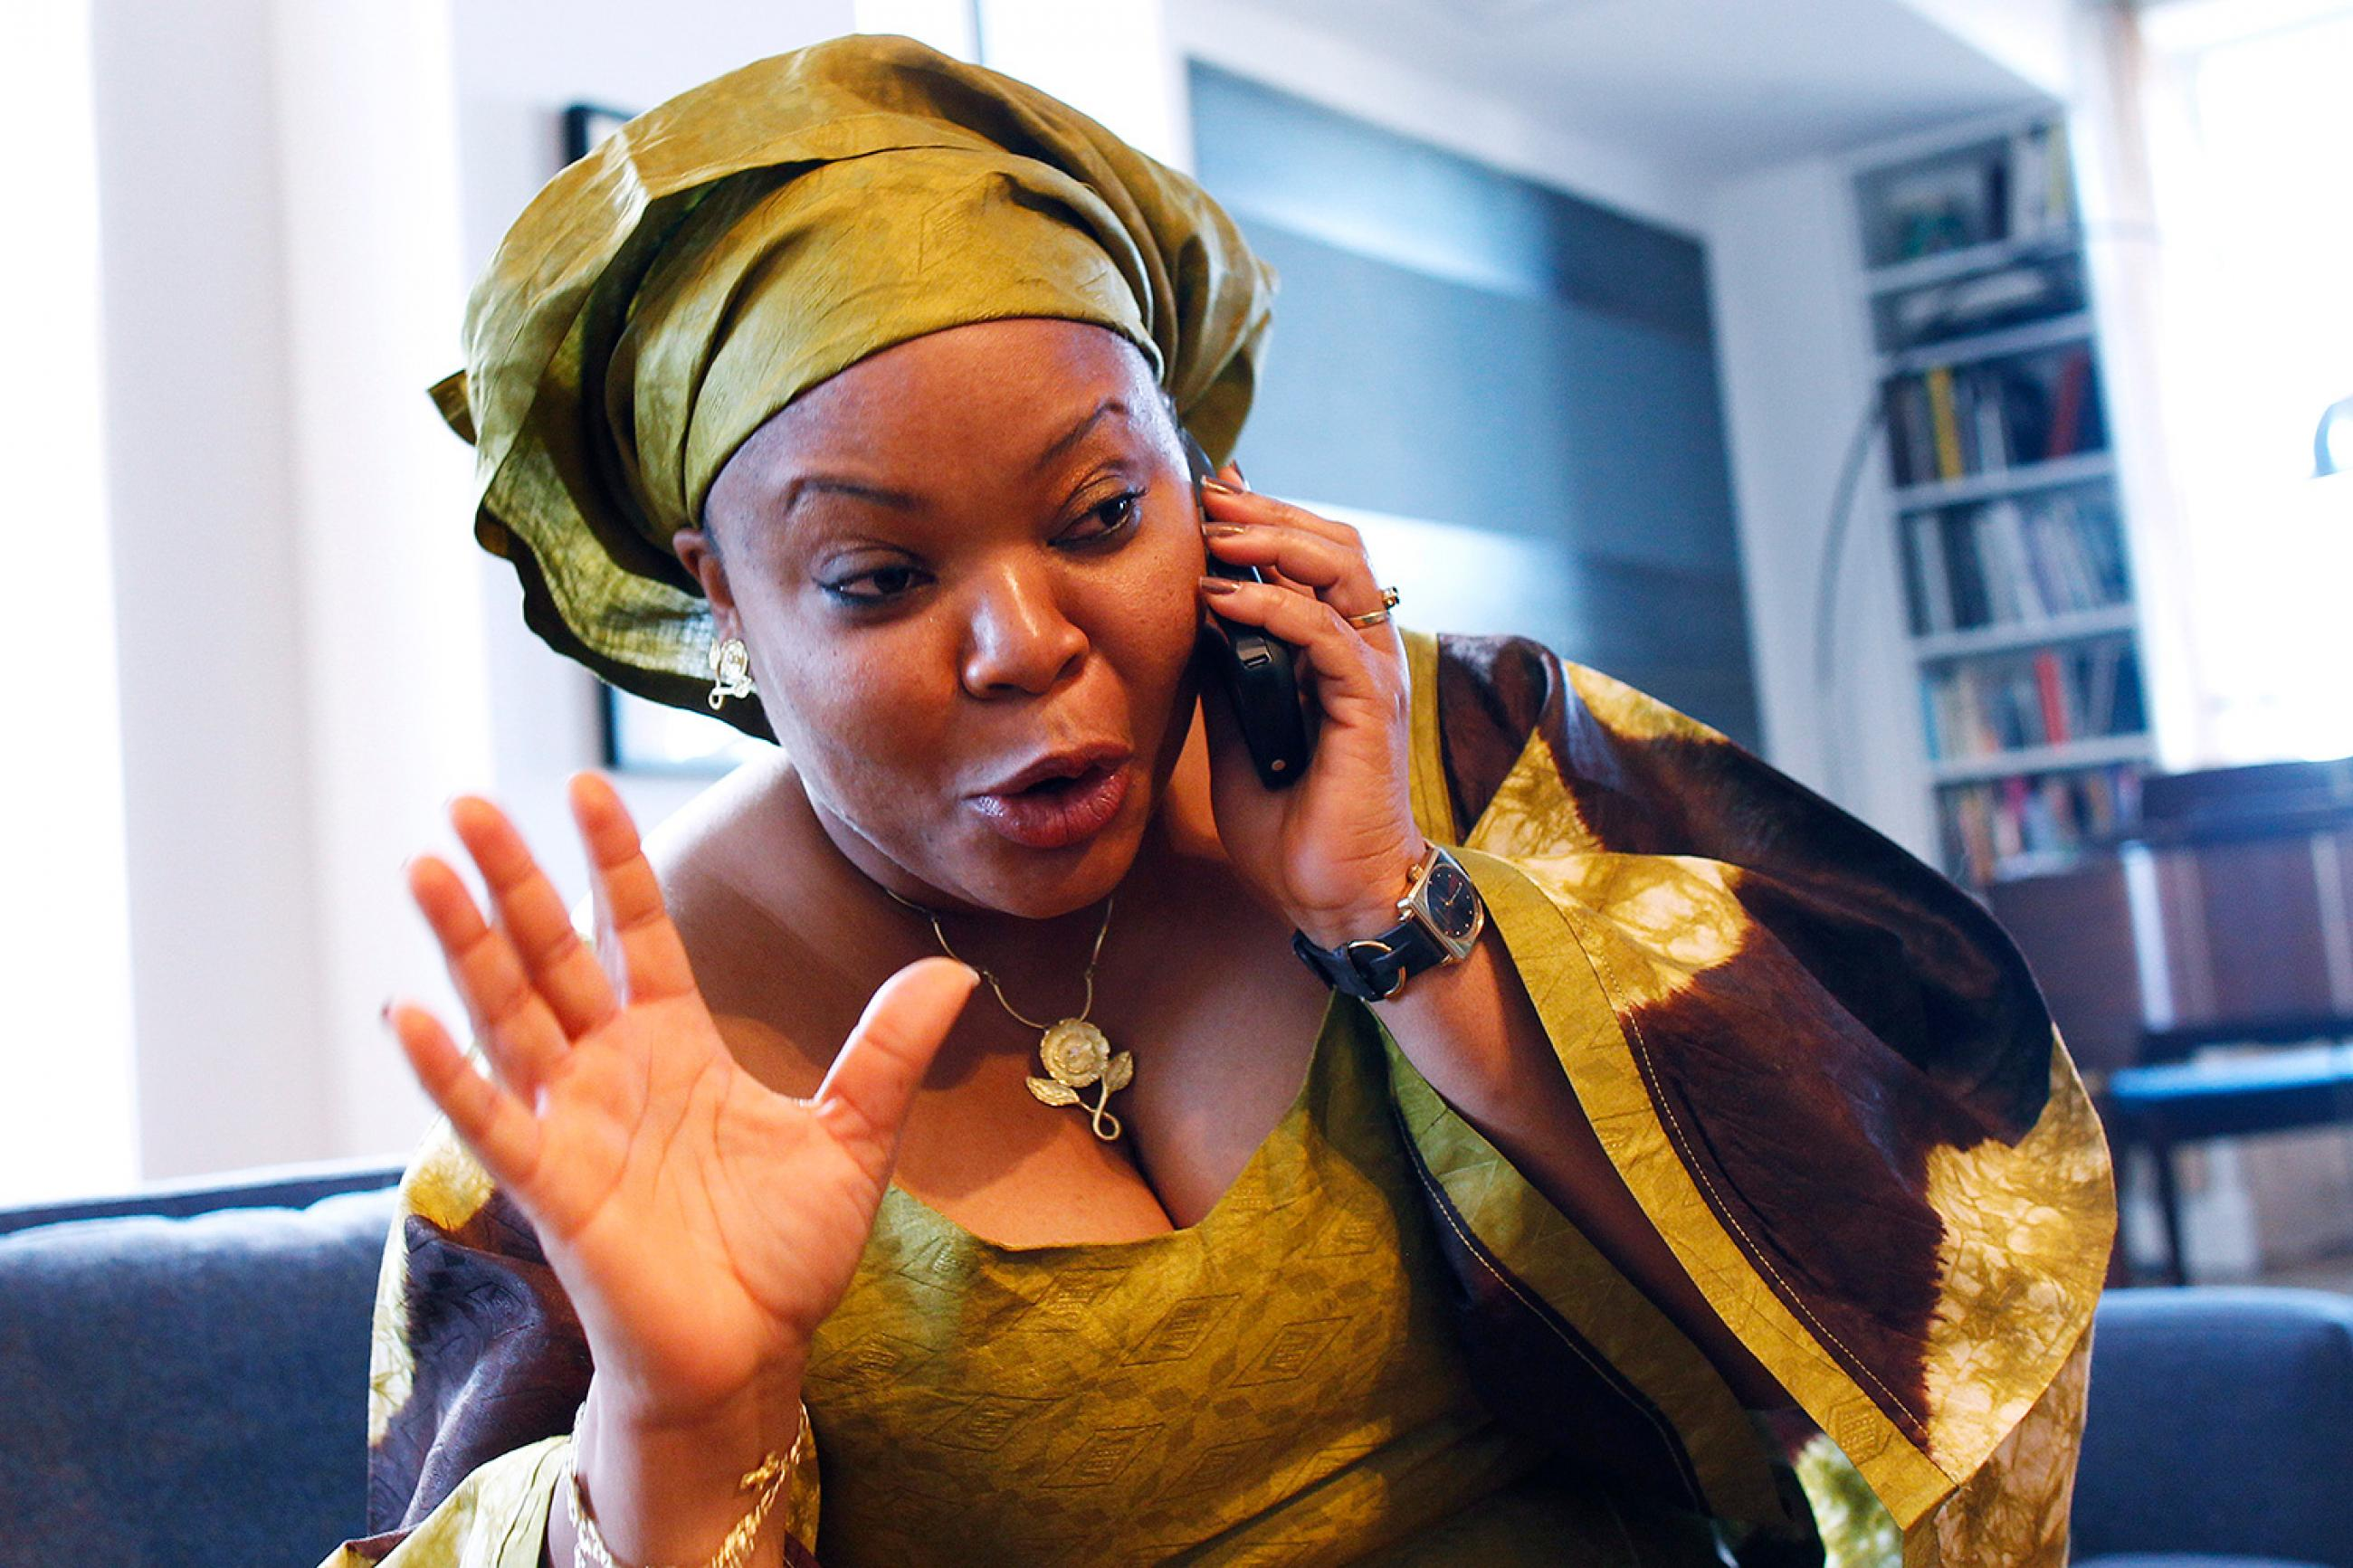 Nobel Peace Prize winner Leymah Gbowee on a phone in New York on October 7, 2011. The efforts of Gbowee and other women to peace-building in Liberia was seen as critical to securing a lasting peace. The photo shows the nobel laureate in great spirits talking on the phone. REUTERS/Shannon Stapleton